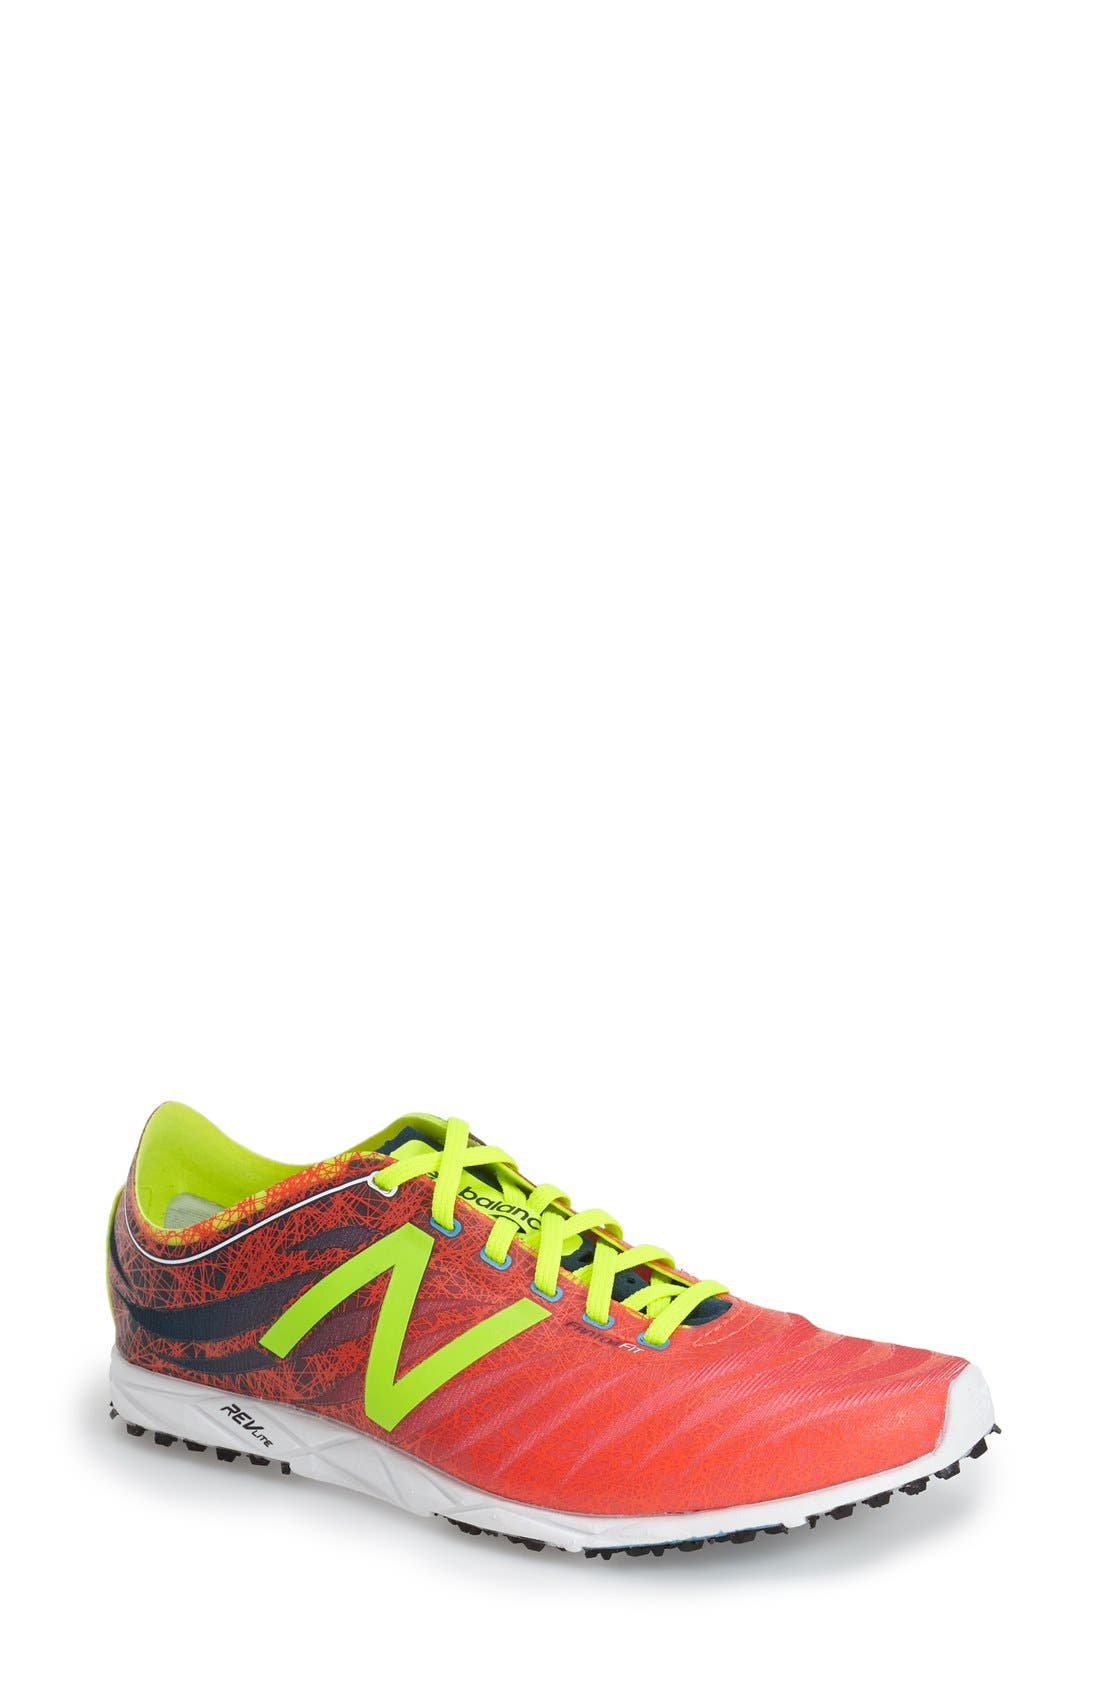 Alternate Image 1 Selected - New Balance '5000' Running Shoe (Women)